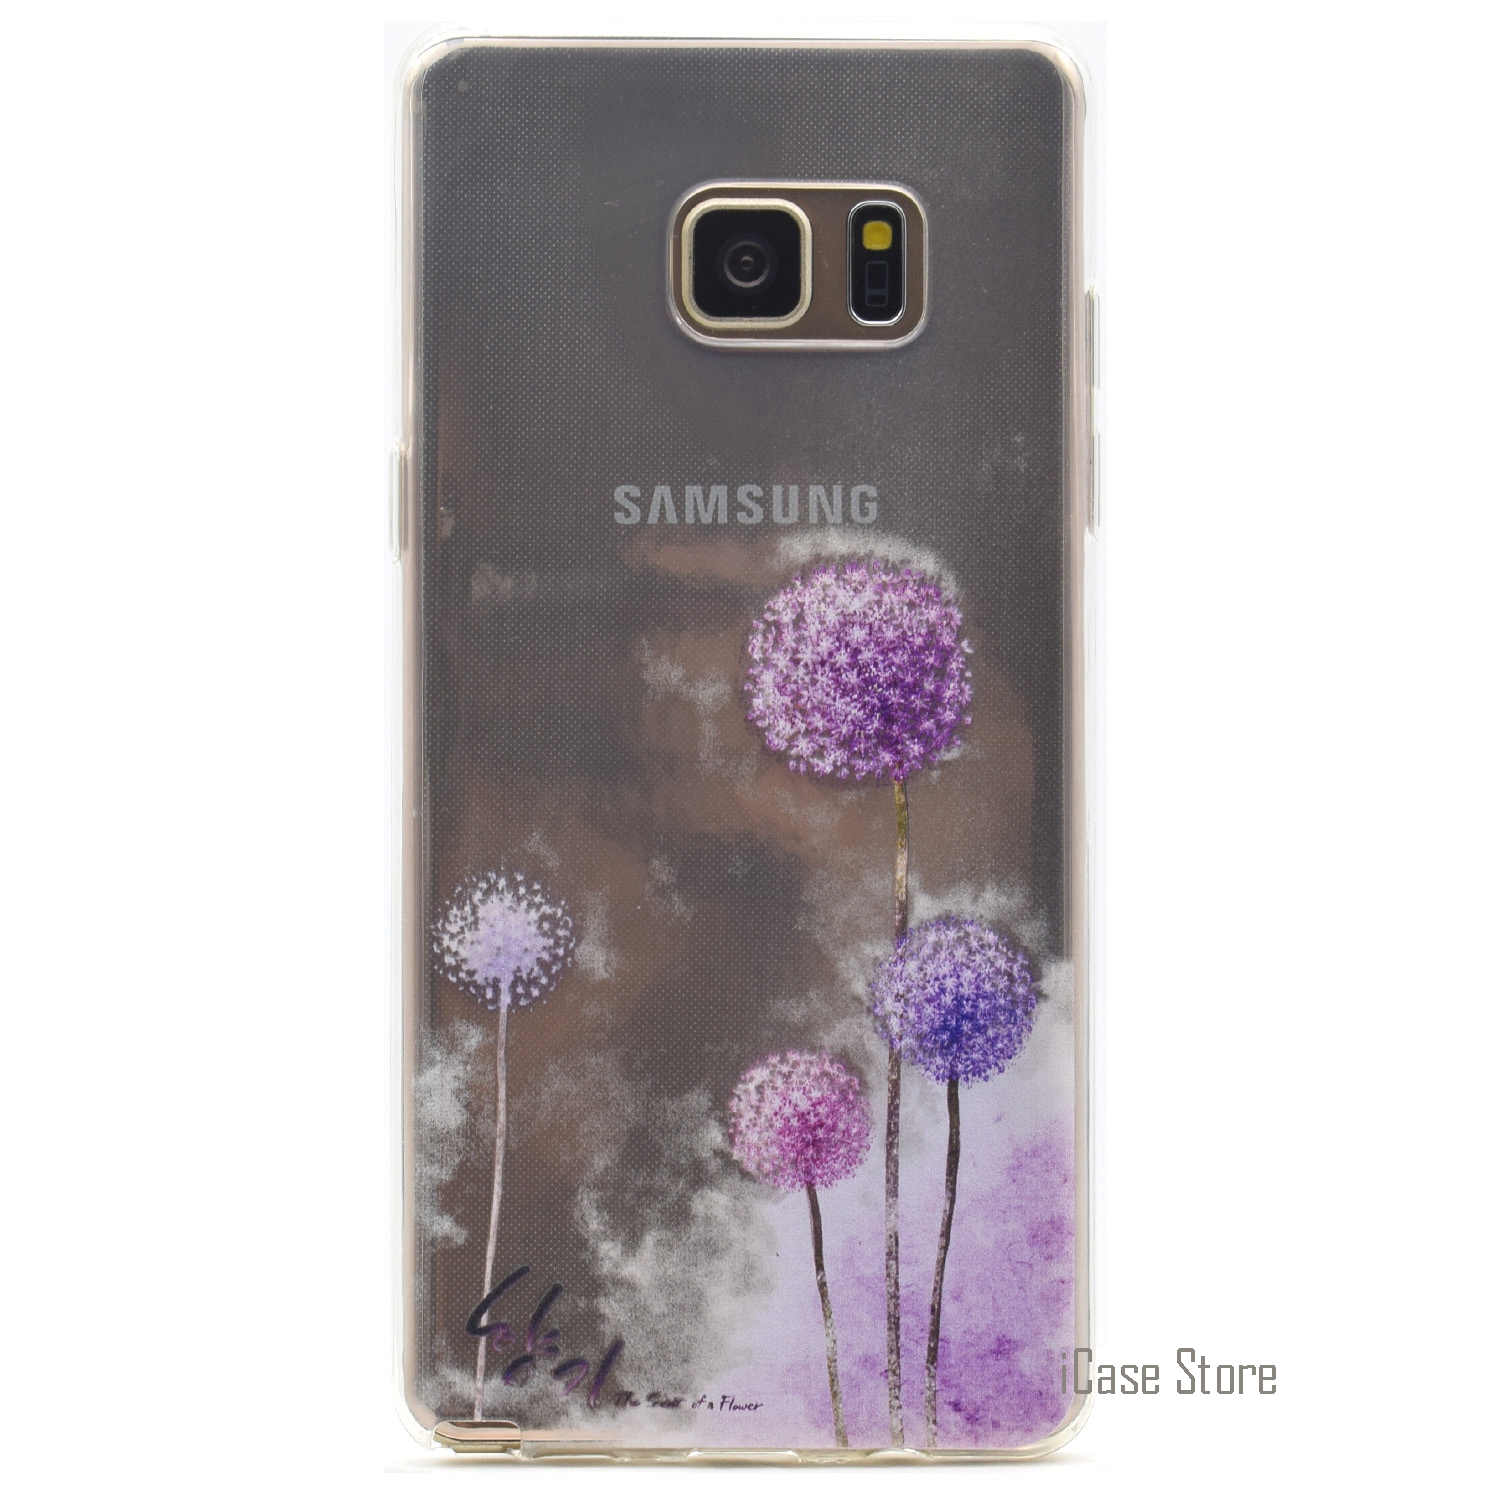 High Quality Cute Cartoon Phone Case For Samsung Galaxy Note 7 Soft Silicone Phonet Casi Pone Csse Cover Casa For Samsung NOTE 7